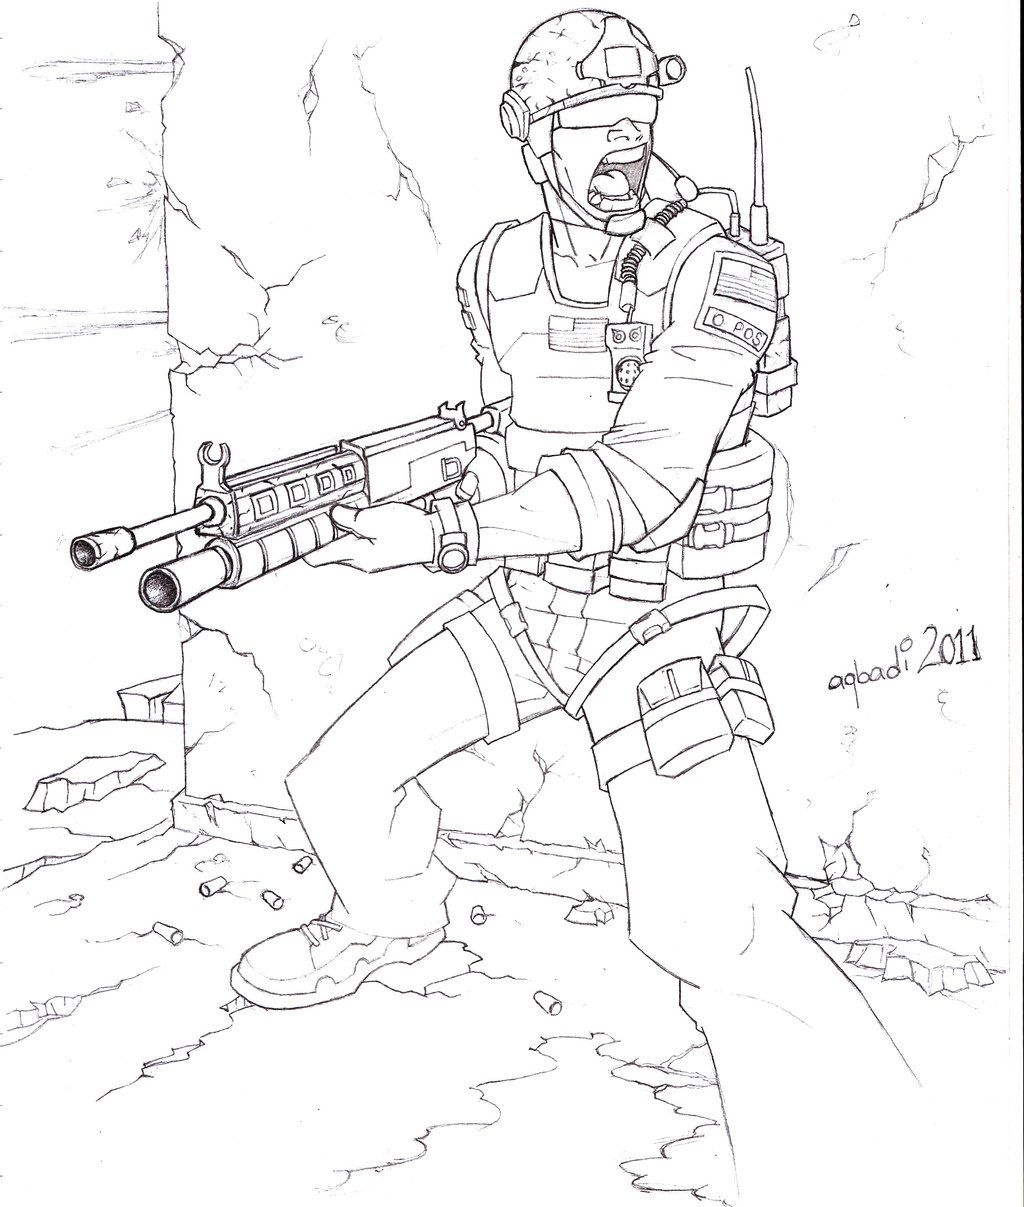 call of duty drawings - Bing images | Coloring pages ...